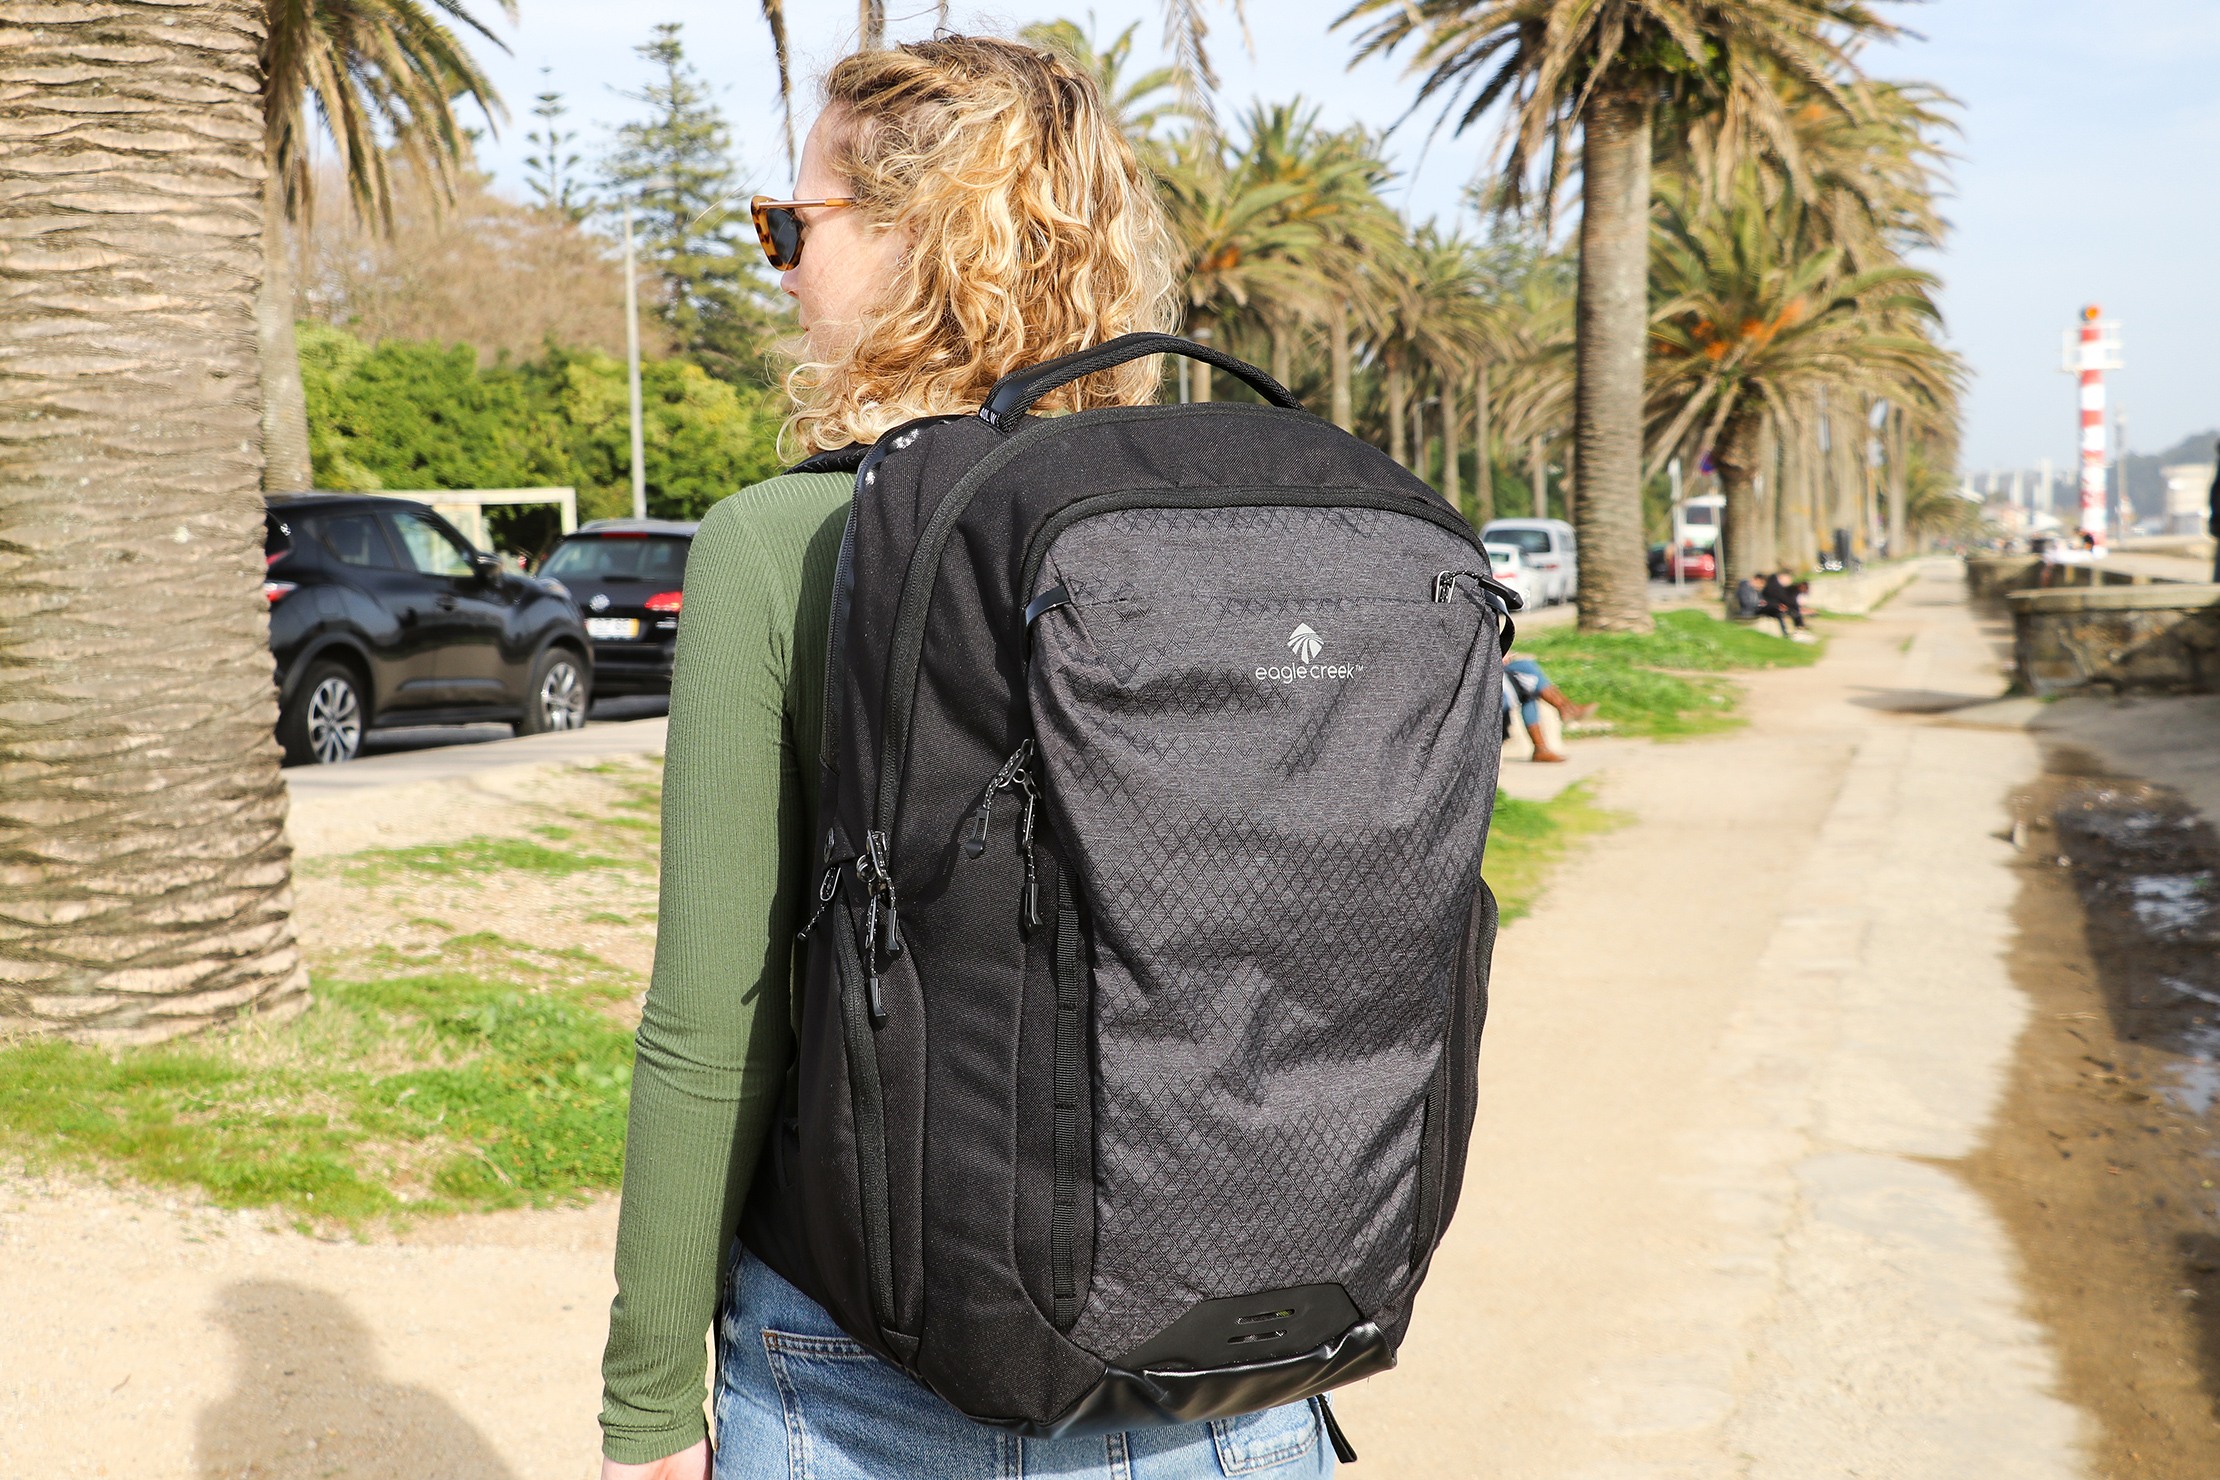 Eagle Creek Wayfinder Backpack 40L Branding